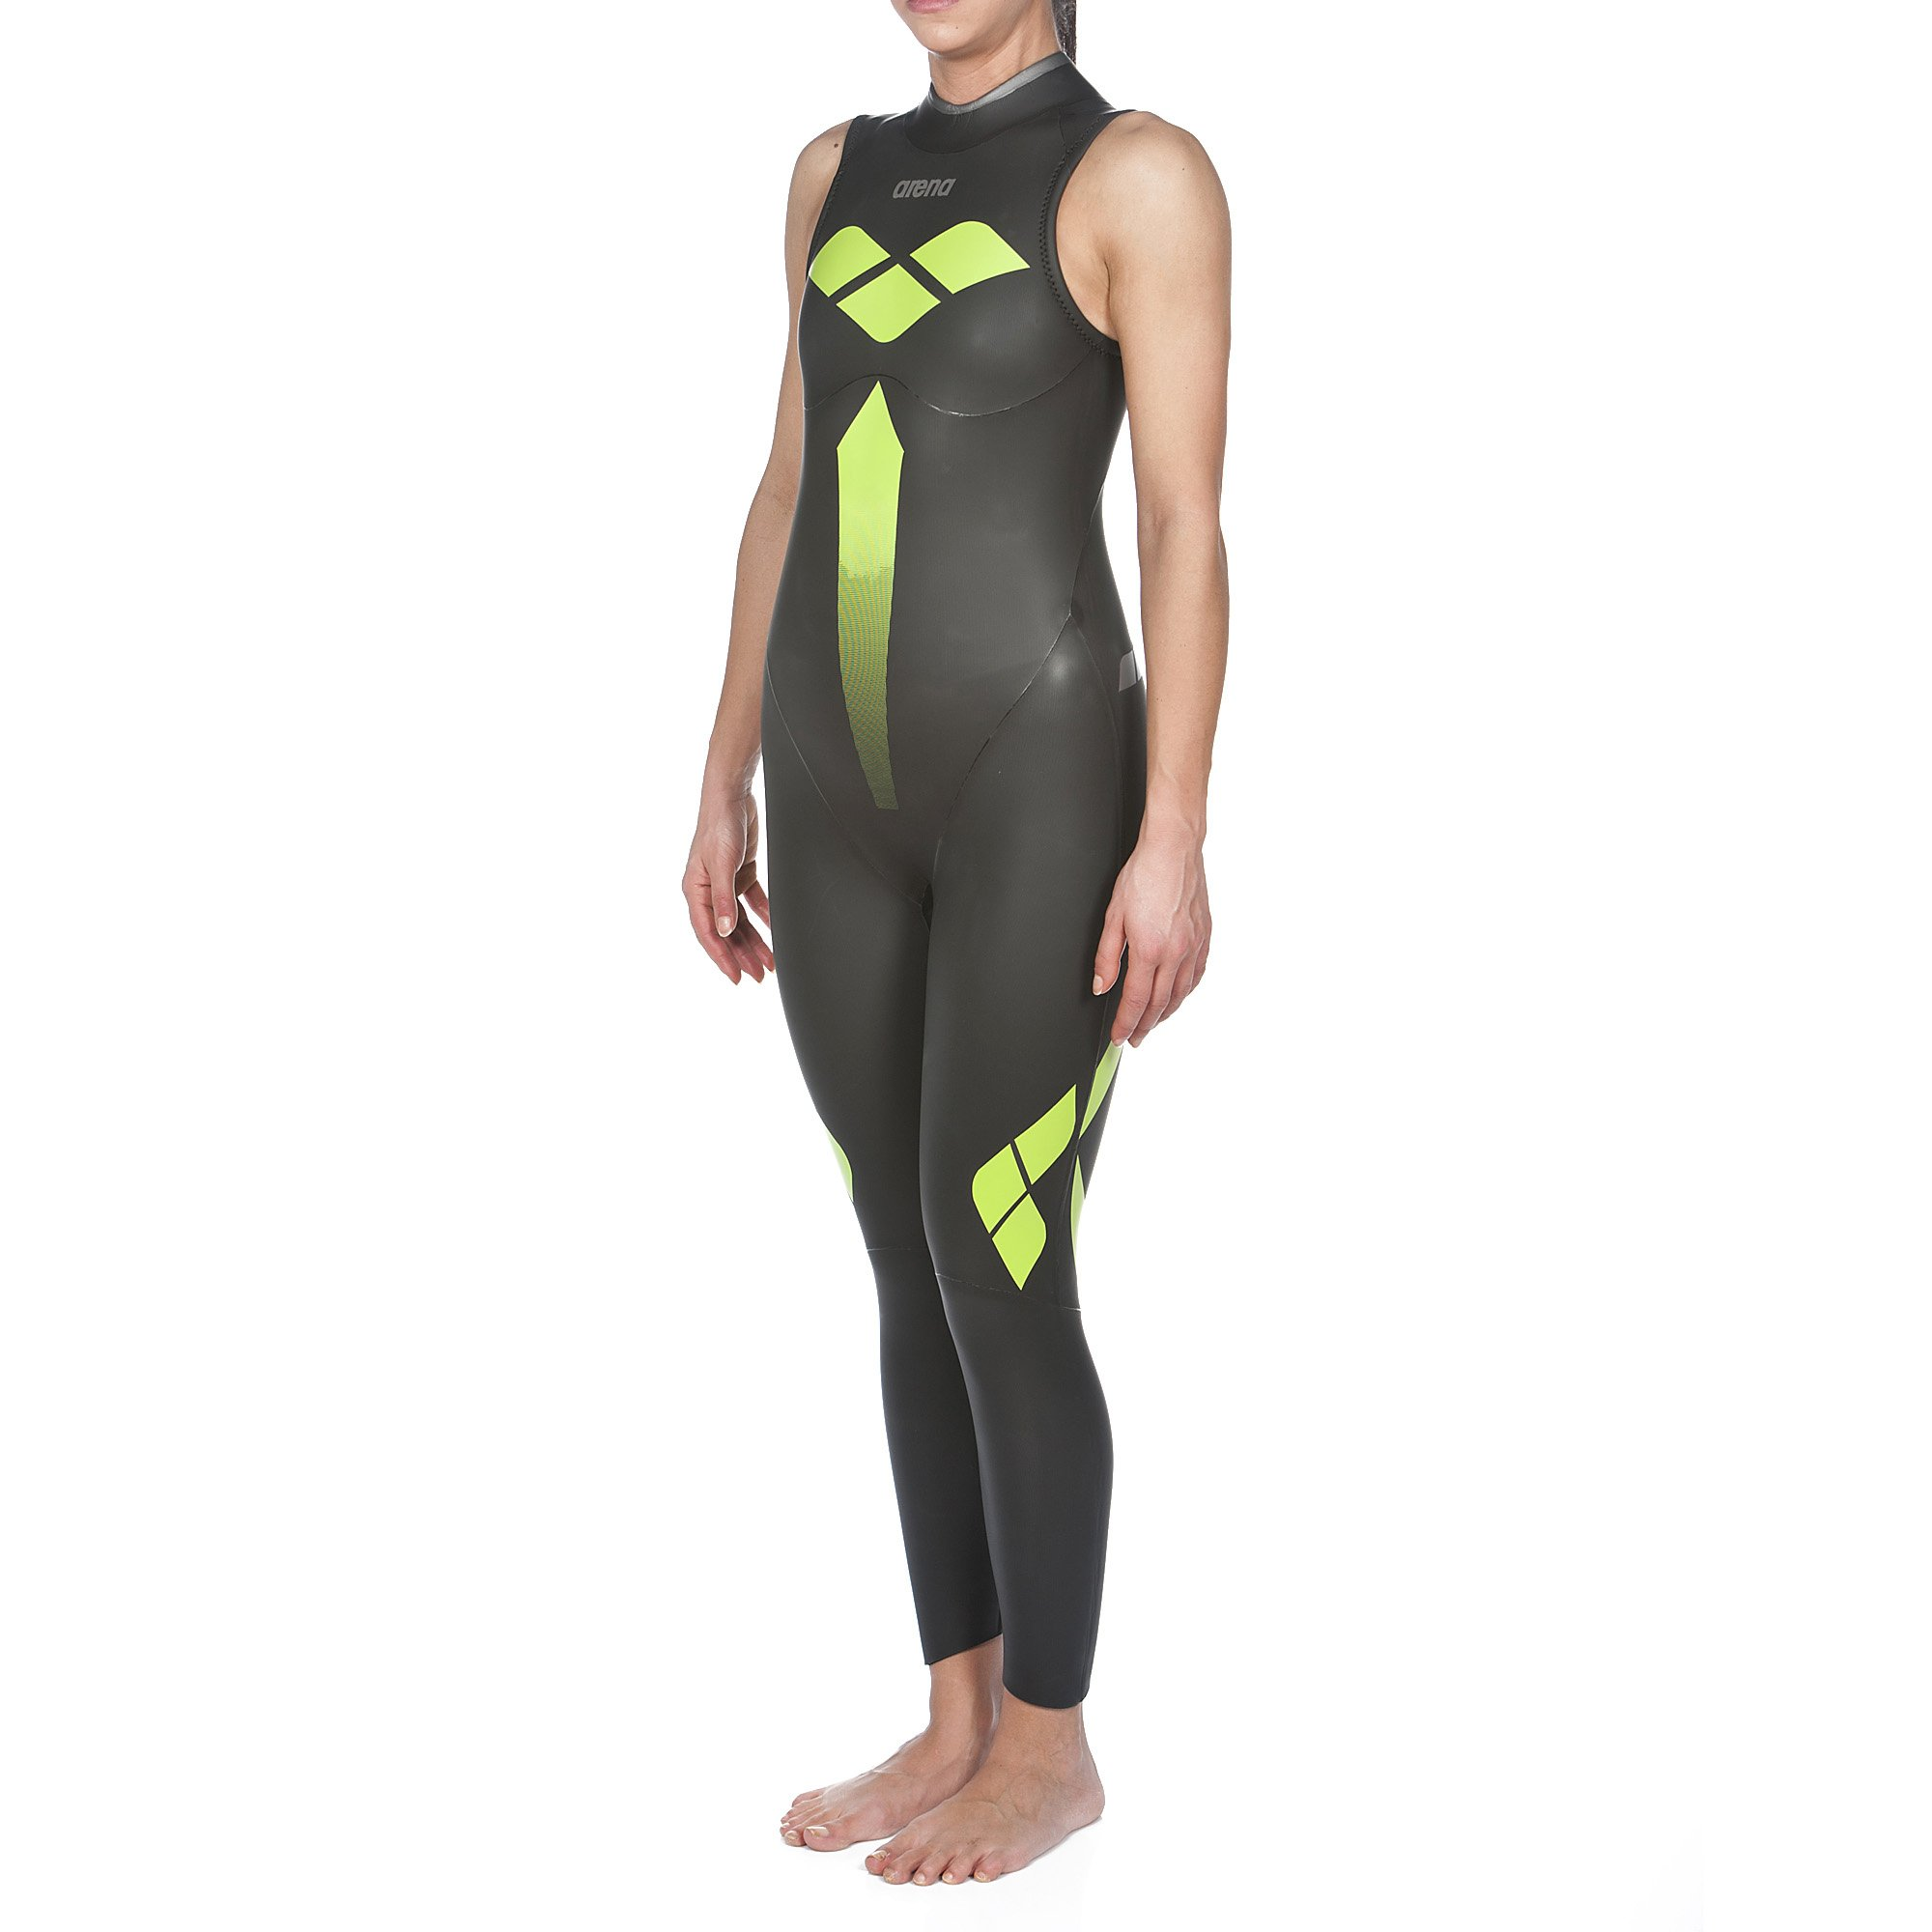 Arena Triwetsuit Sleeveless Wetsuit, Black, Medium by Arena